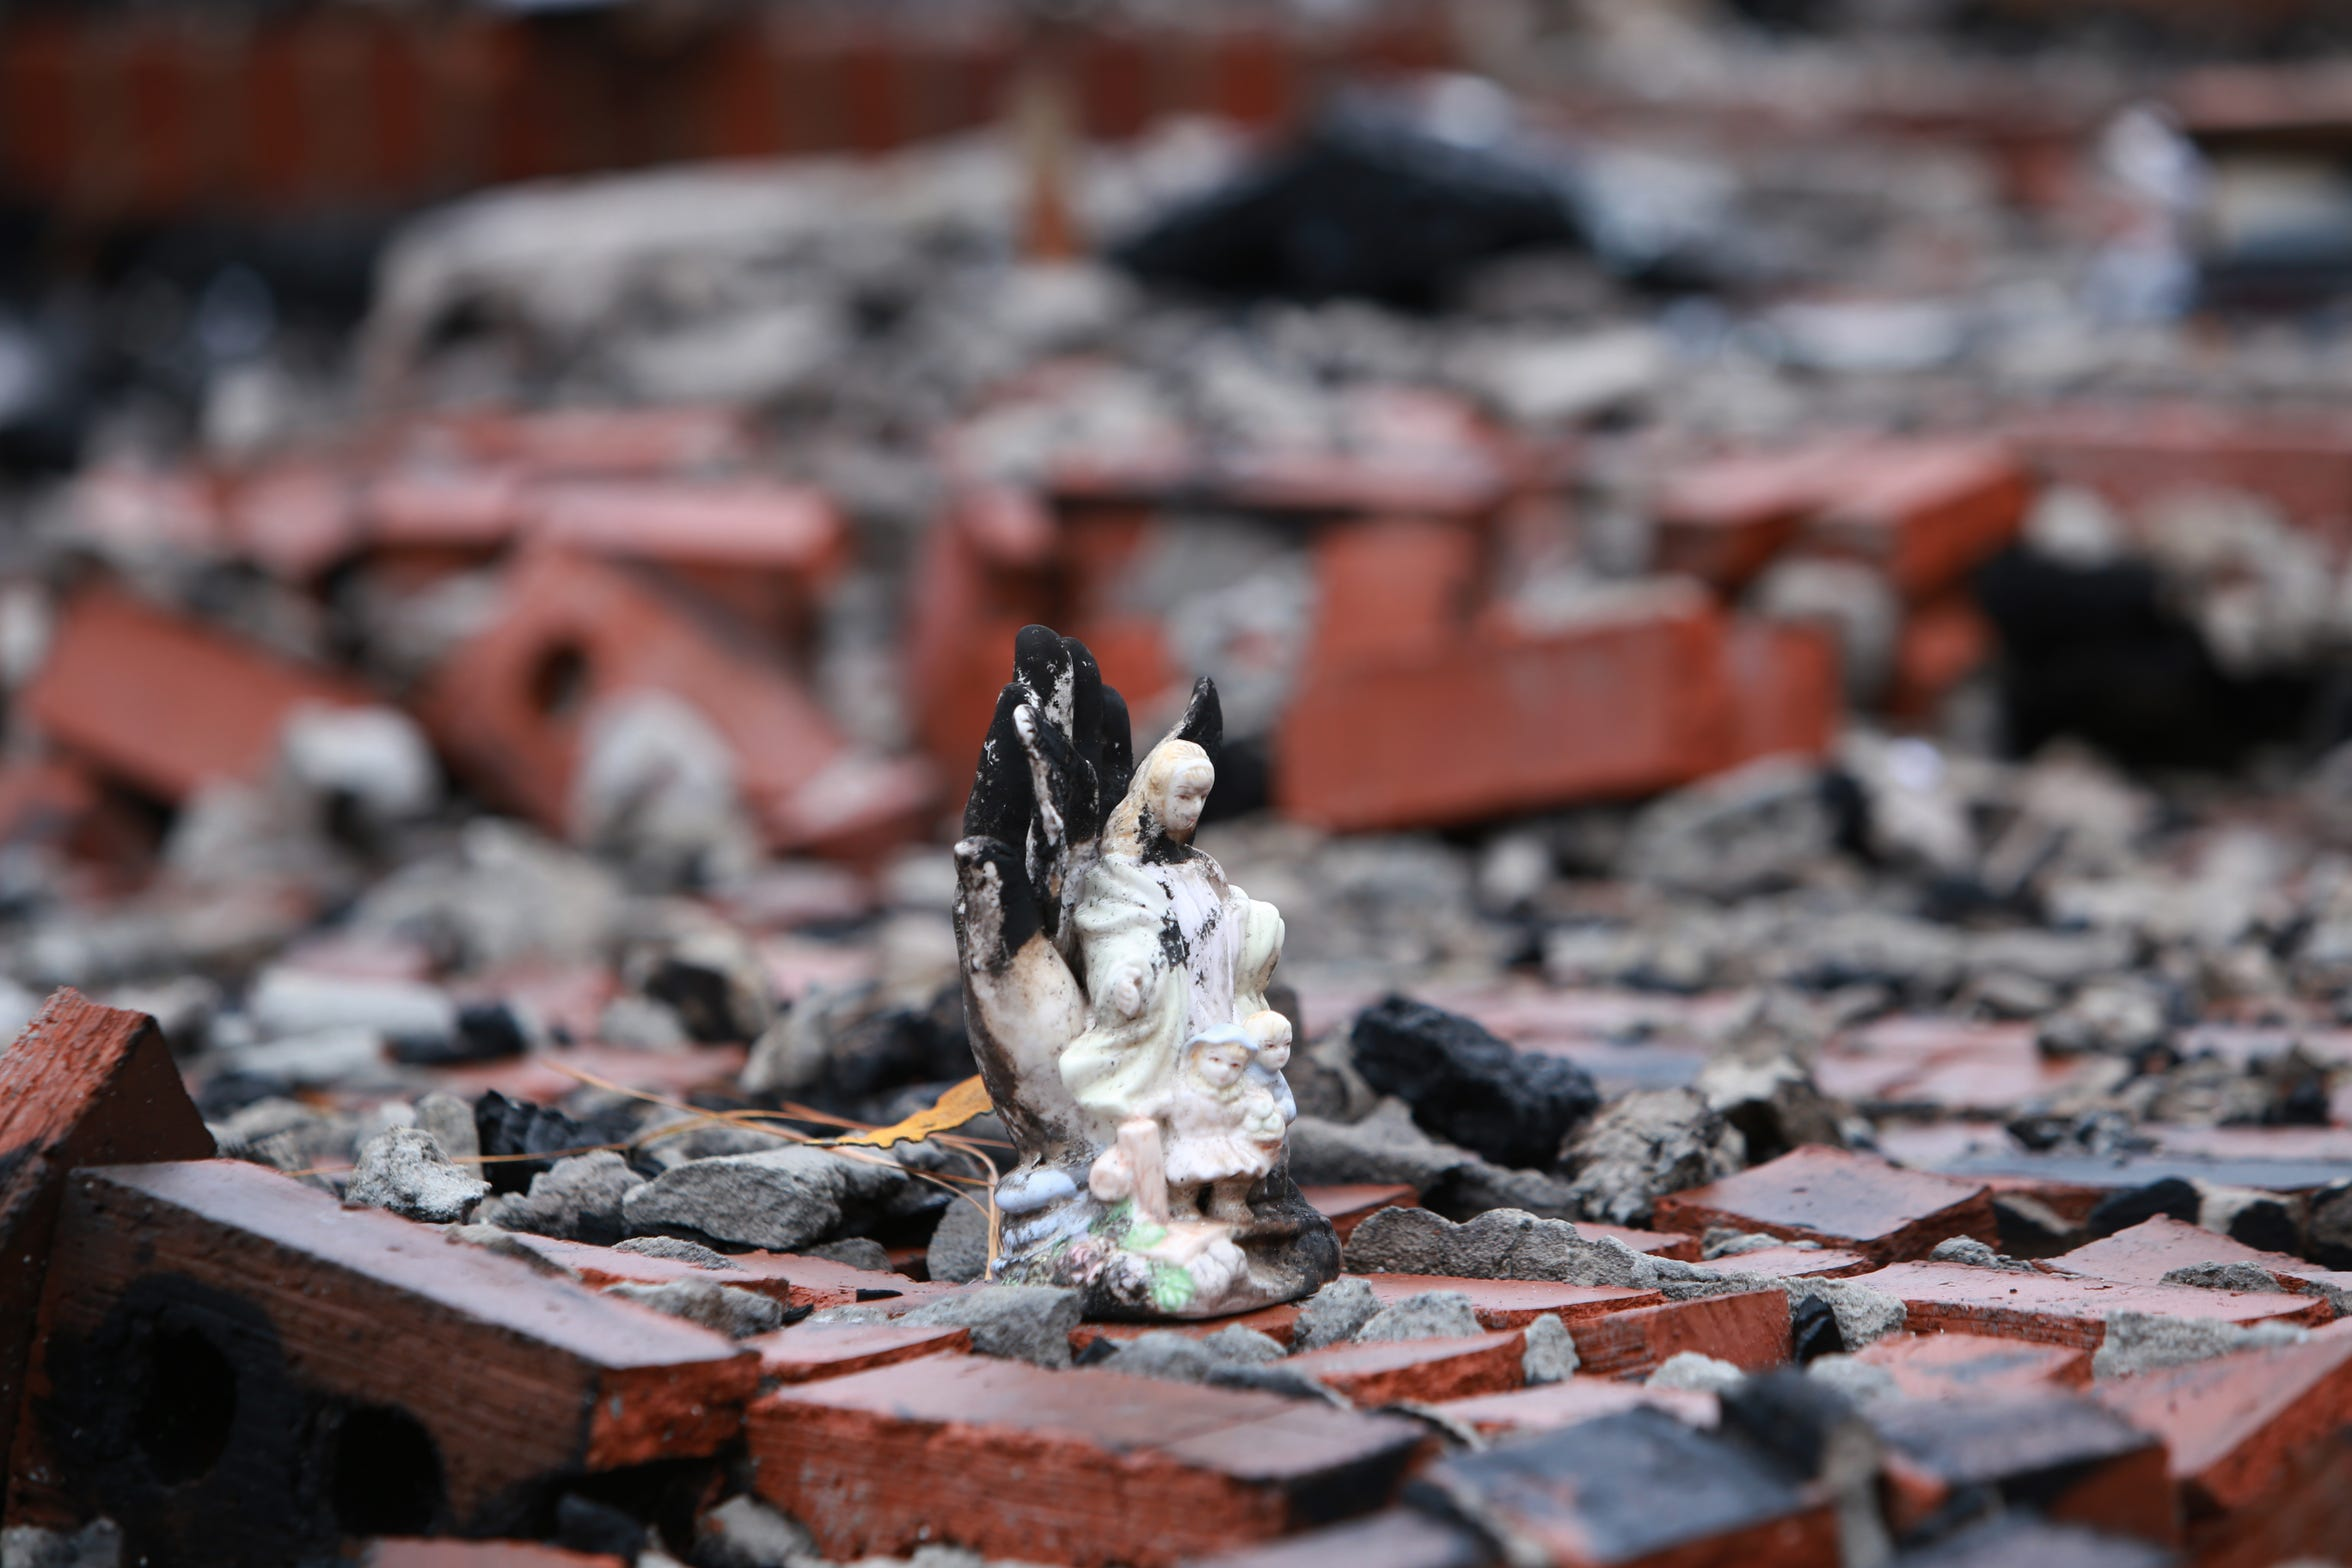 An angel figurine was one of the possessions left in the rubble of a house fire that destroyed the Haas home in Kiln, Miss., on Nov. 25, 2018.